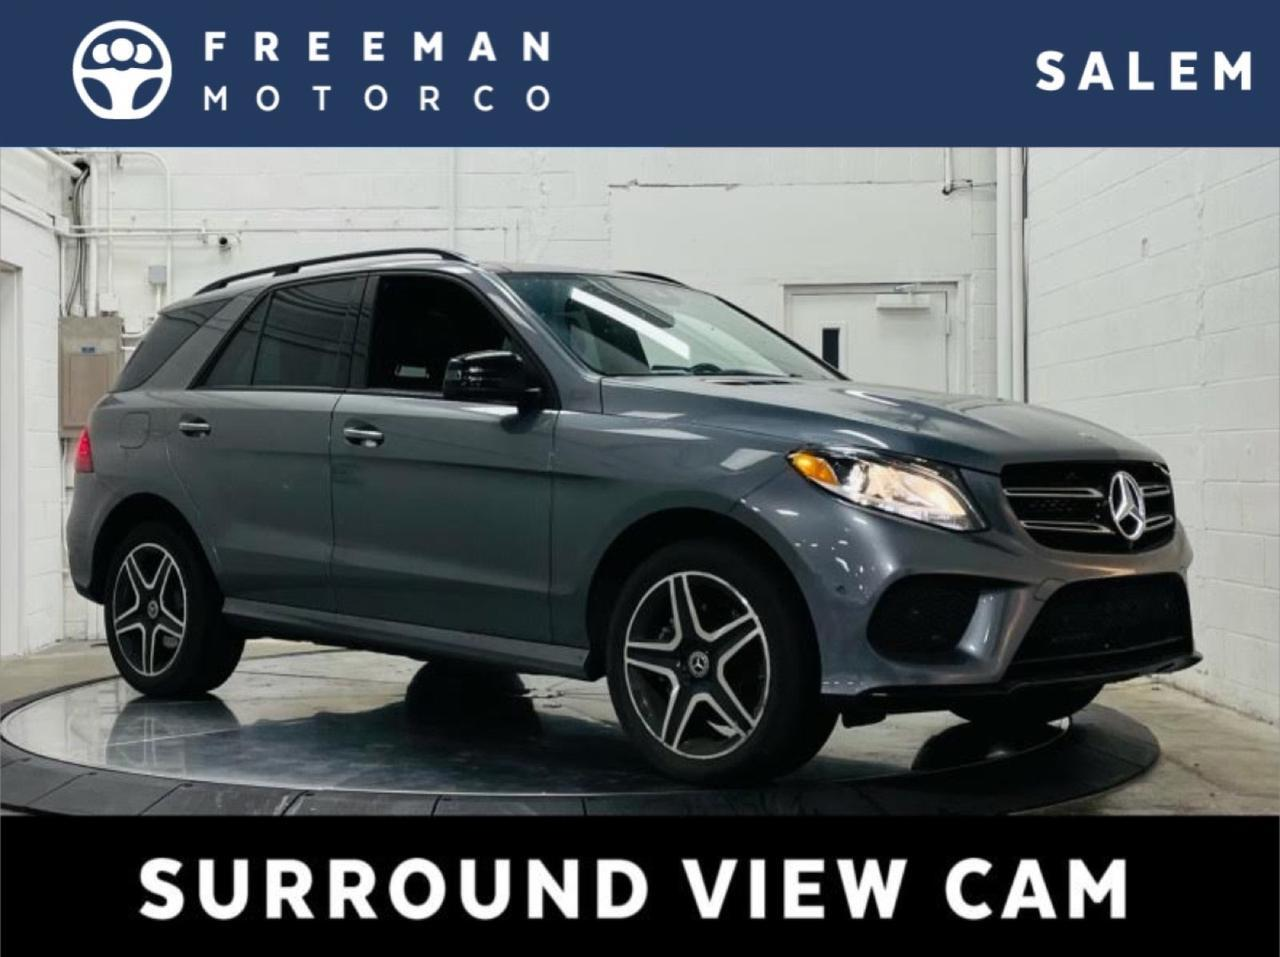 2018 Mercedes-Benz GLE 350 4MATIC Night Package Pano Roof Surround Cam Salem OR